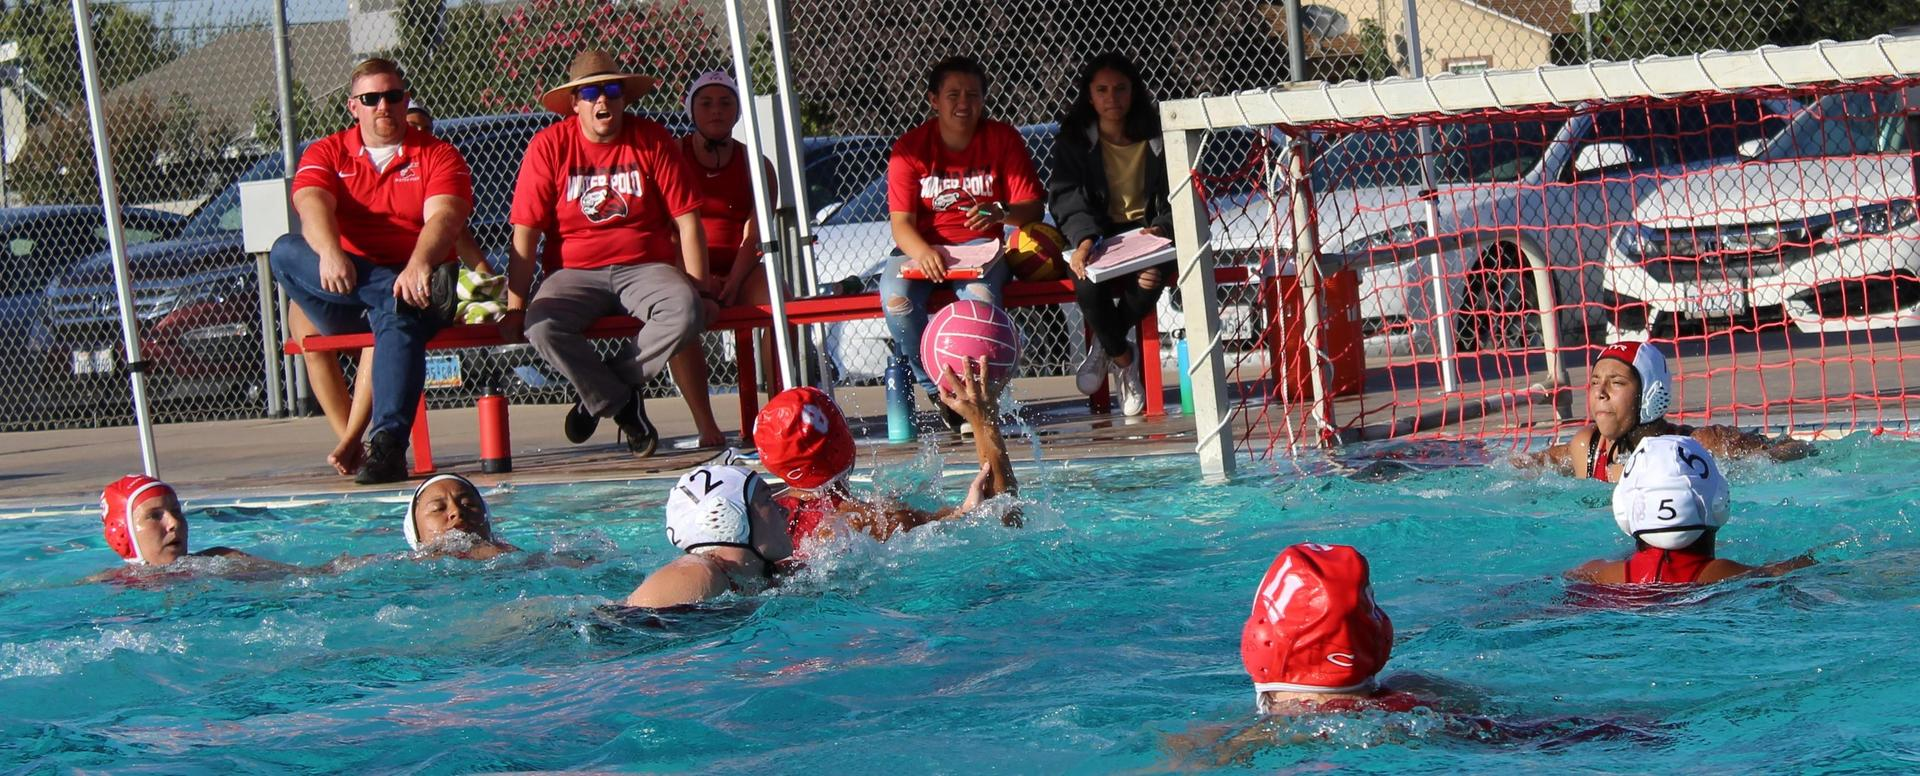 Girls playing water polo against Kerman.